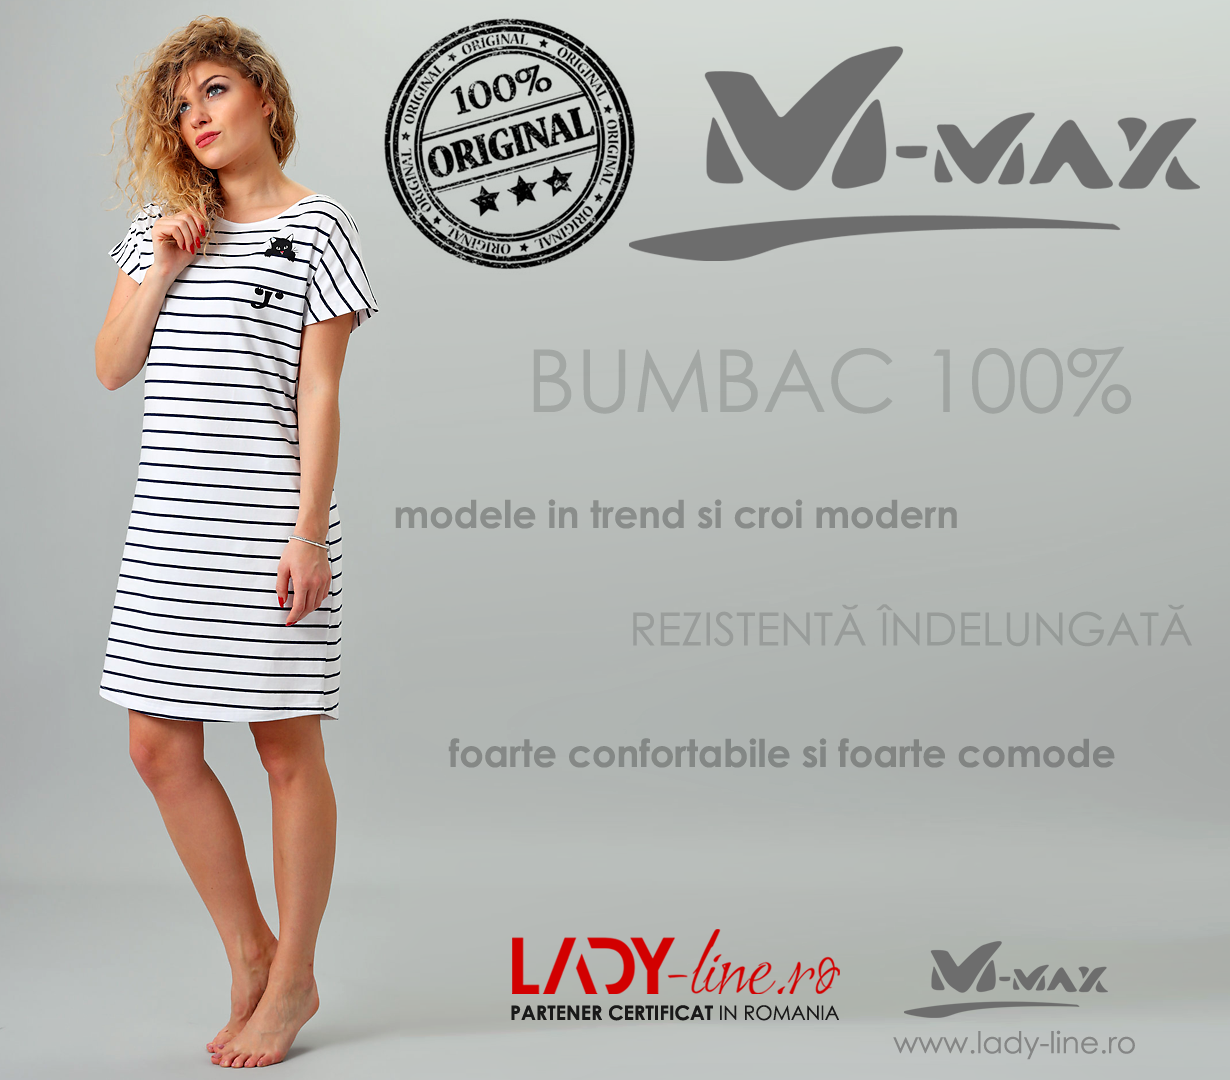 Camasa de Noapte M-Max, Bumbac 100%, 'Curious Black Kitty'